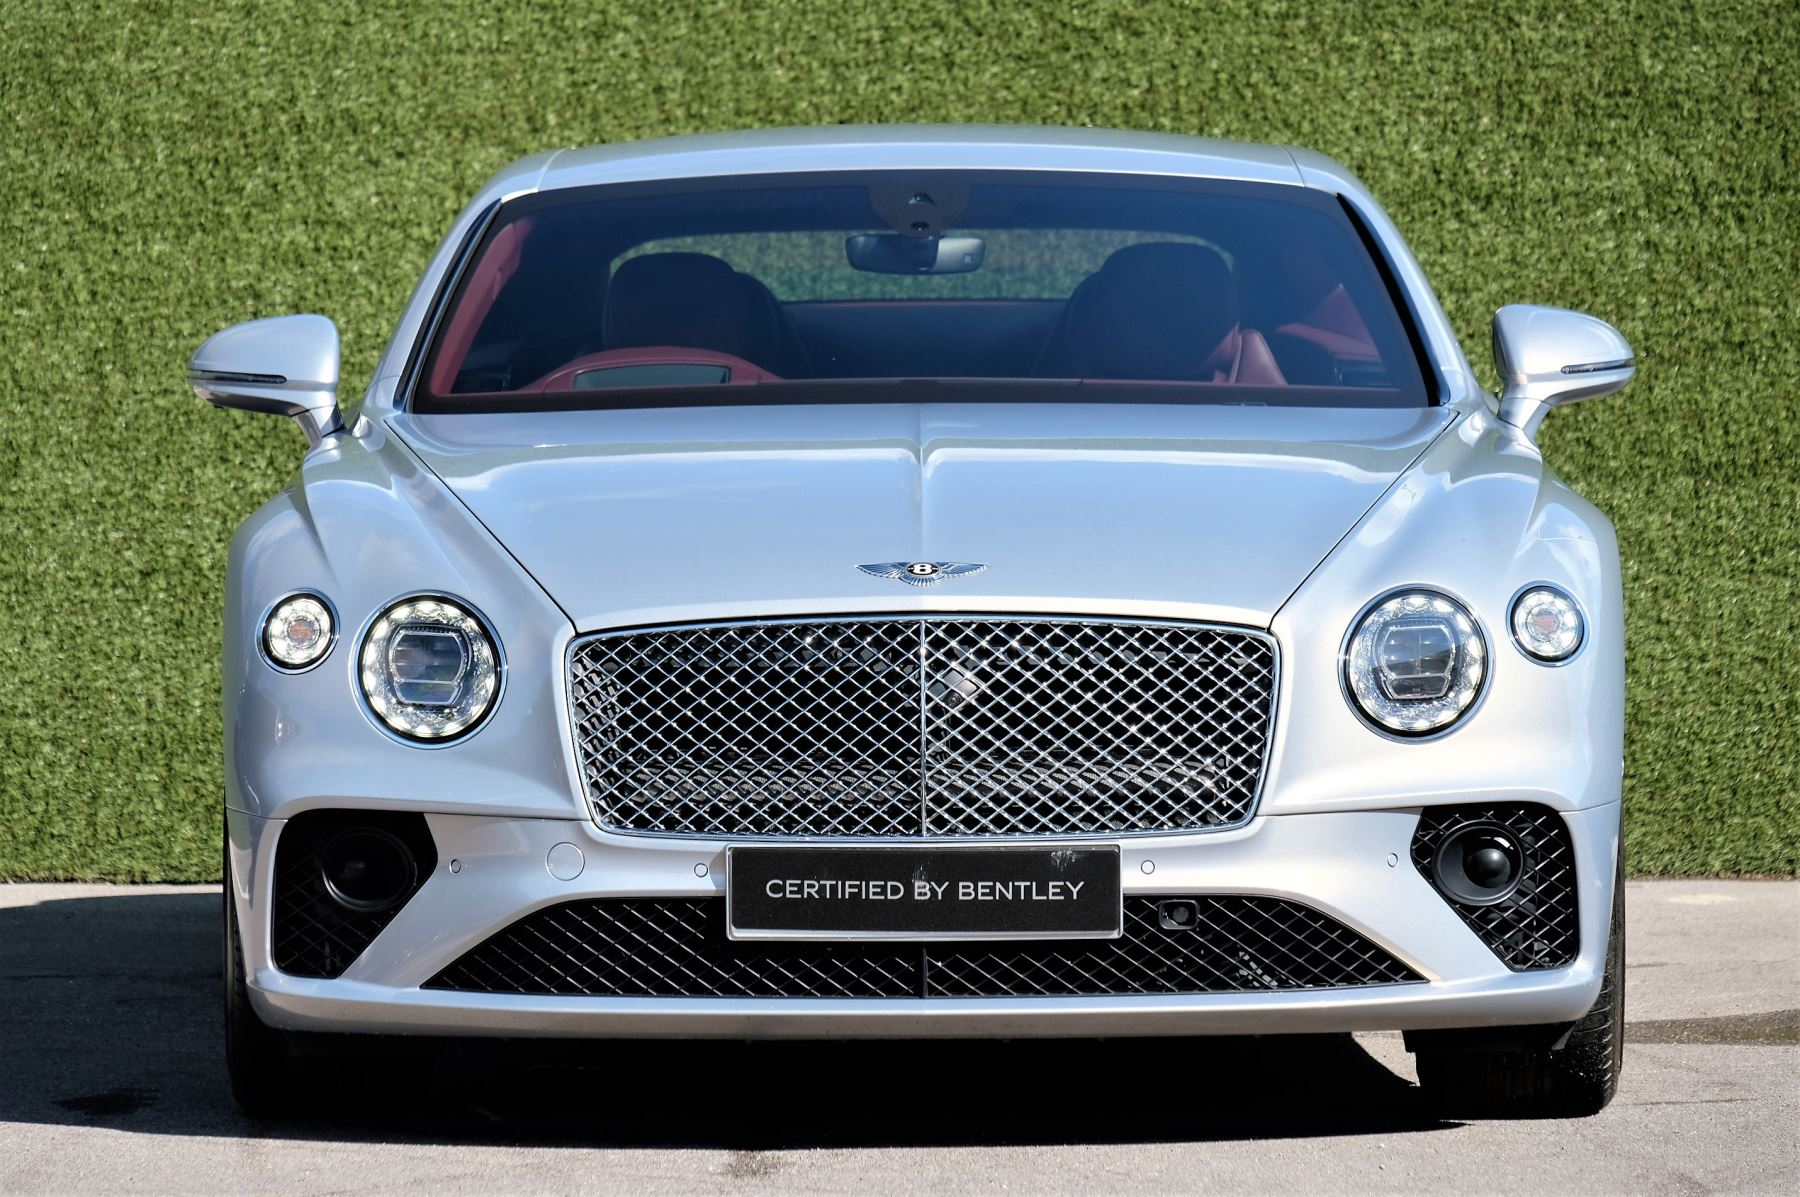 Bentley Continental GT 6.0 W12 Centenary, City and Touring Specification image 2